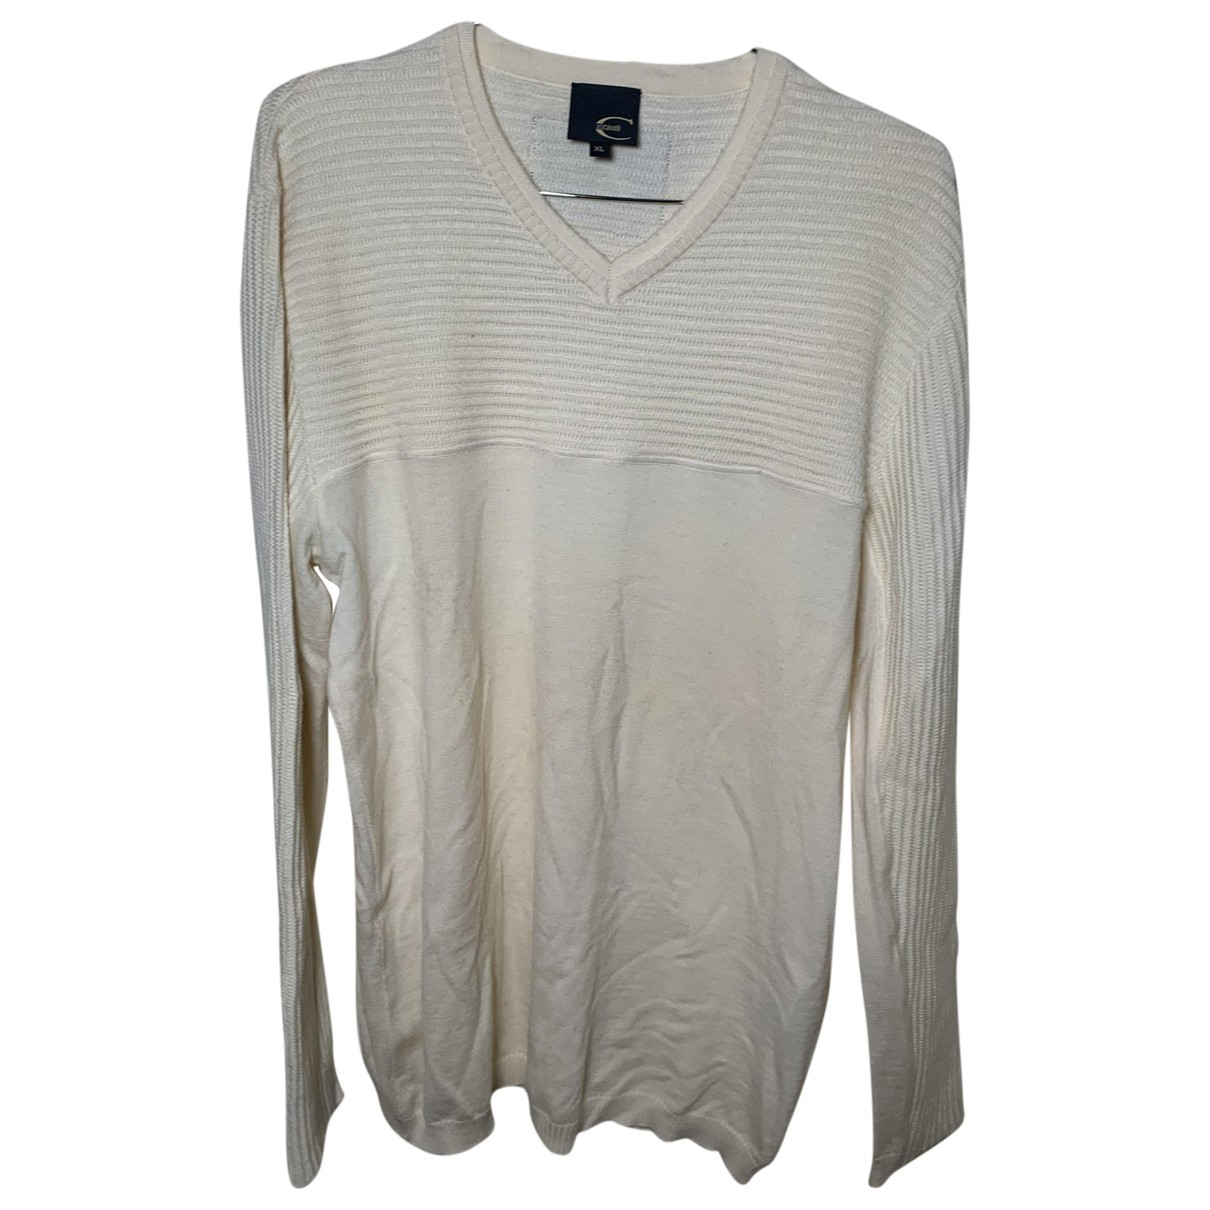 Just Cavalli N Beige Knitwear & Sweatshirts for Men XL International